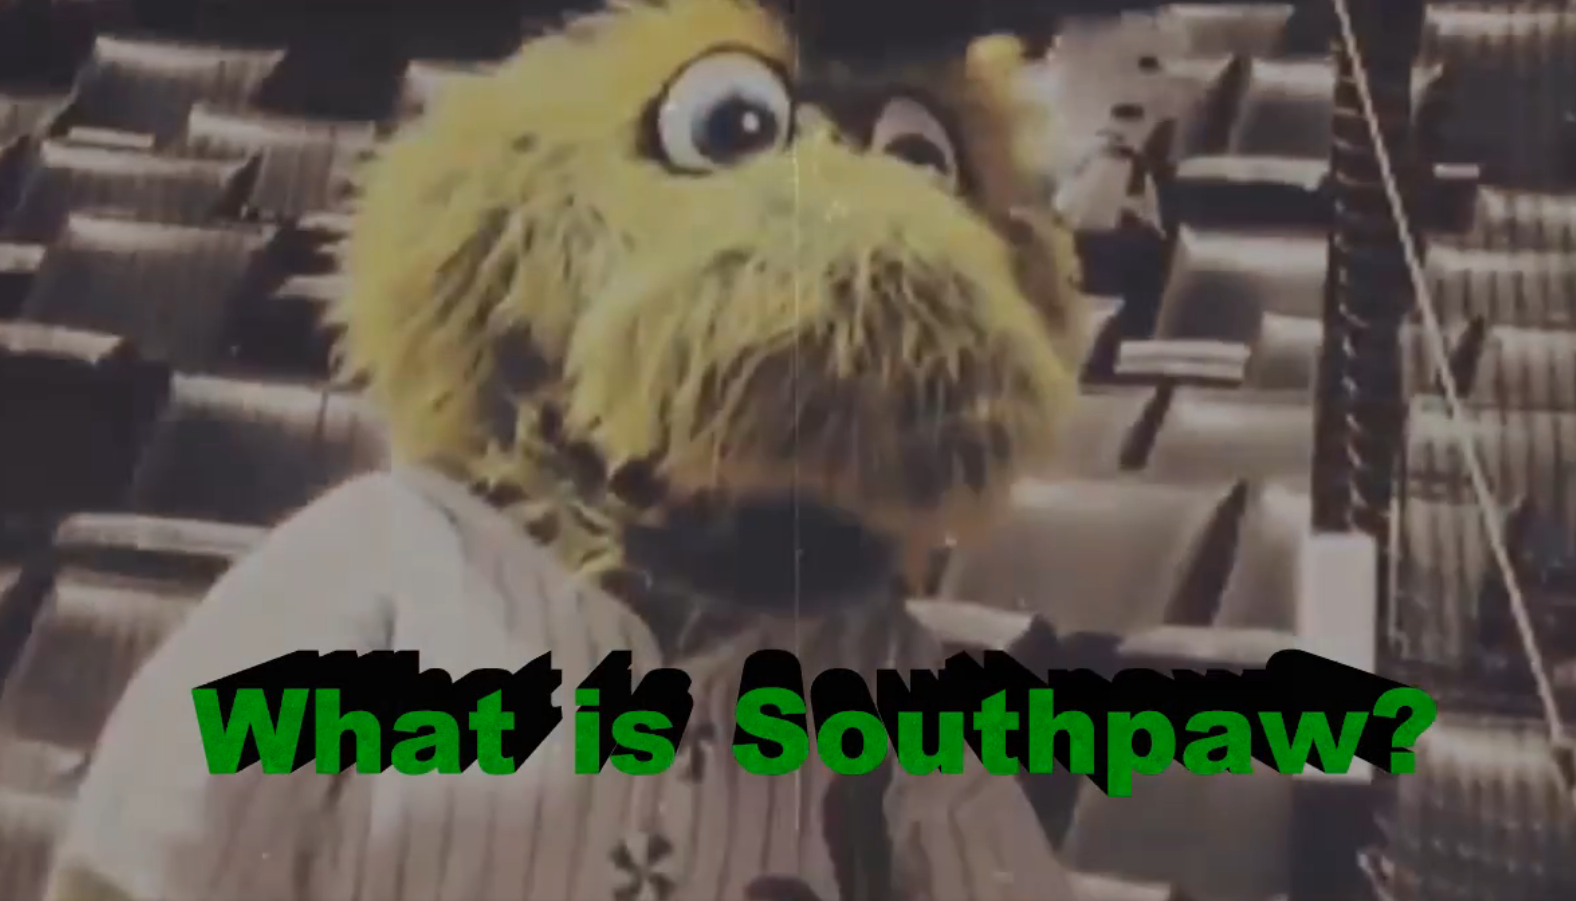 What IS Southpaw?